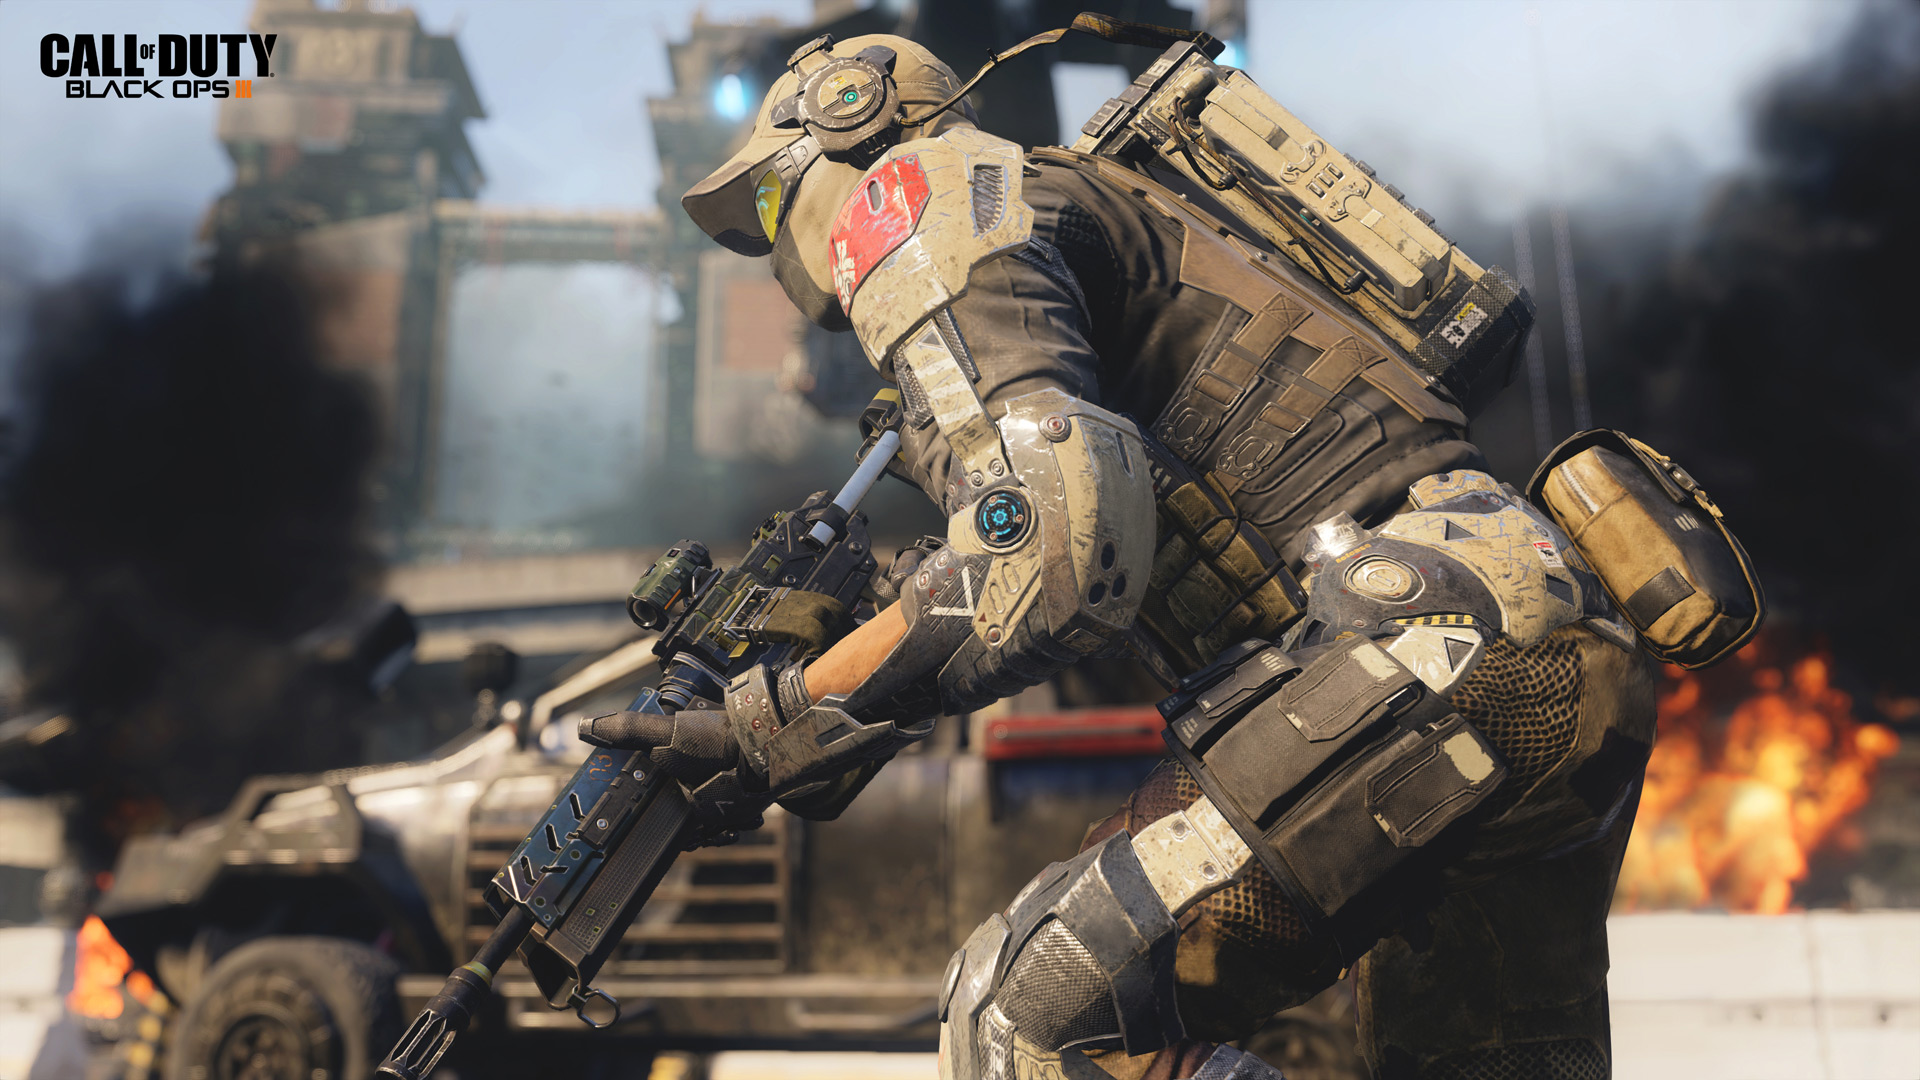 How Black Ops 3 will save Call of Duty